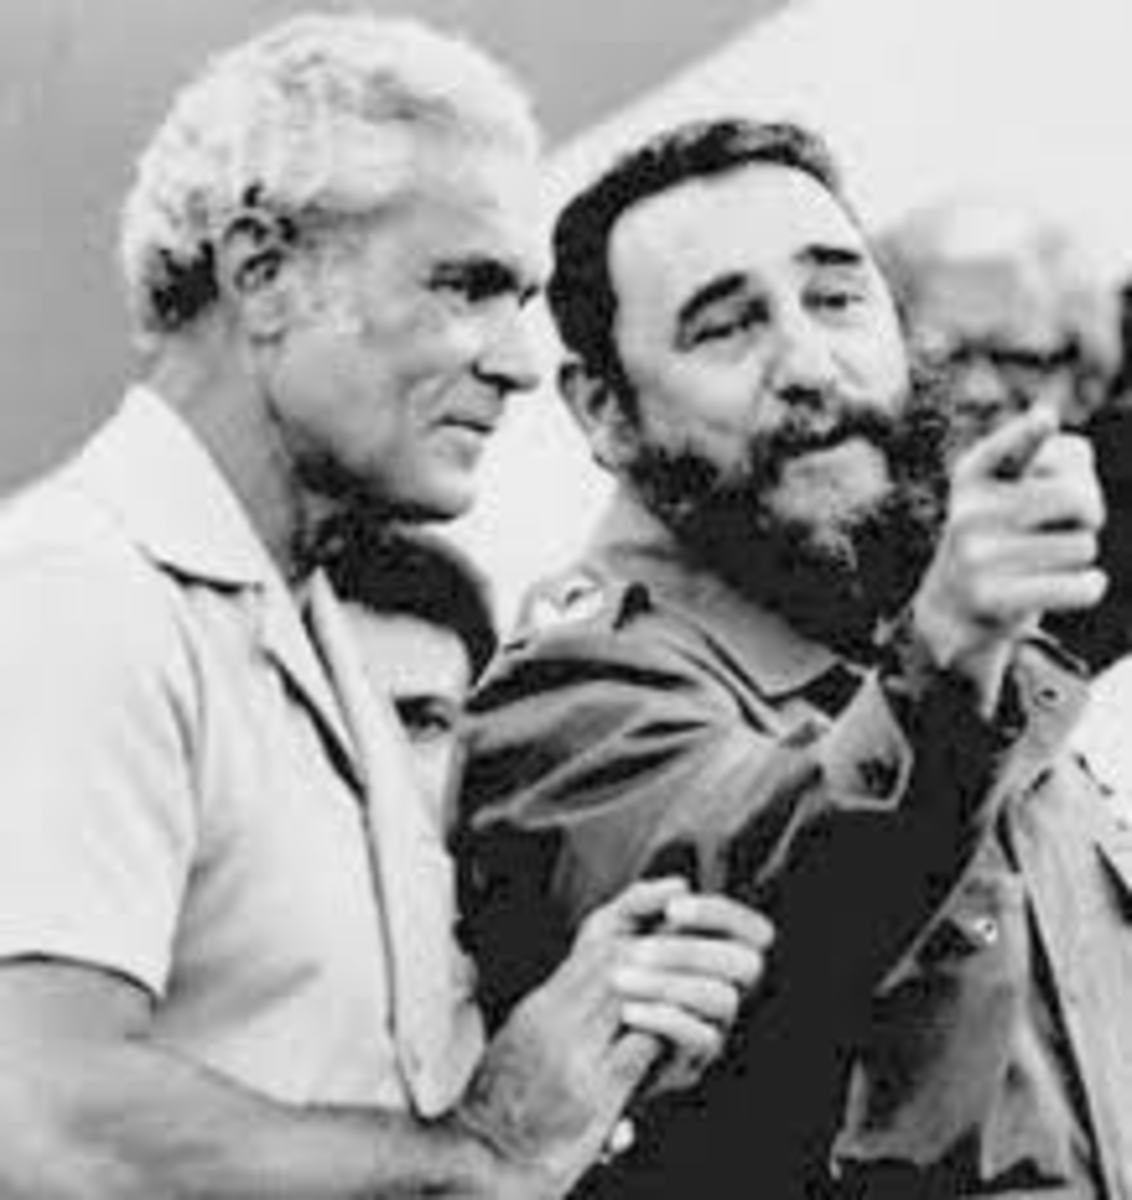 Michael Manley Hanging out with Fidel Castro